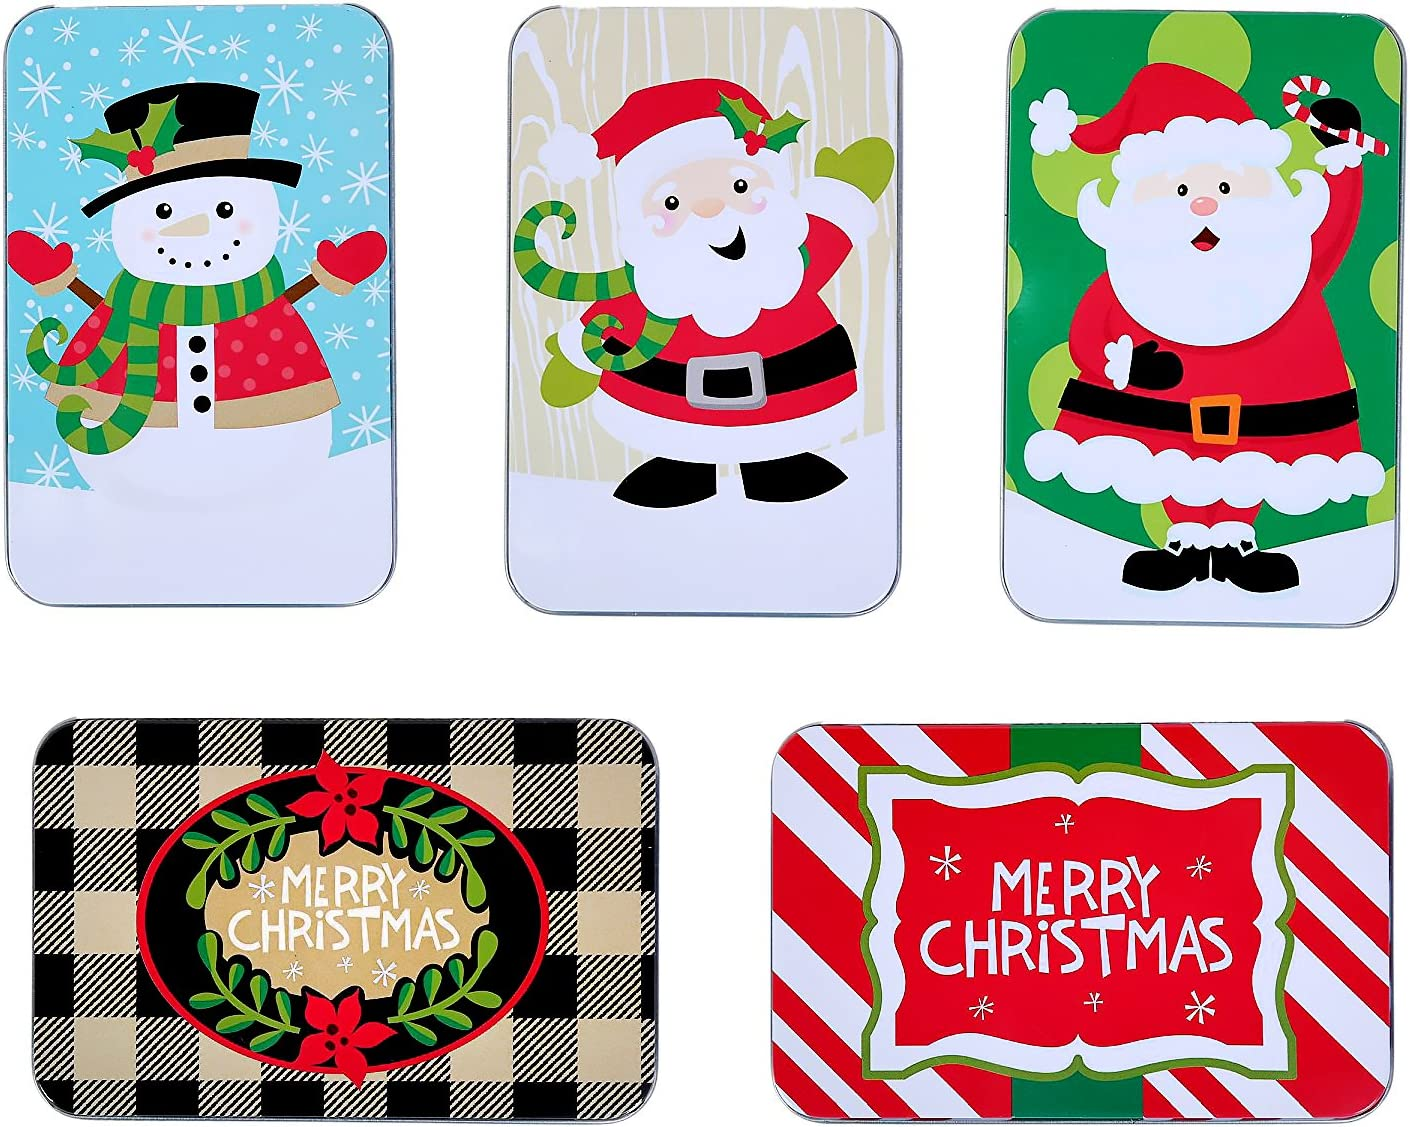 Assorted Christmas Gift Card Holder Tins